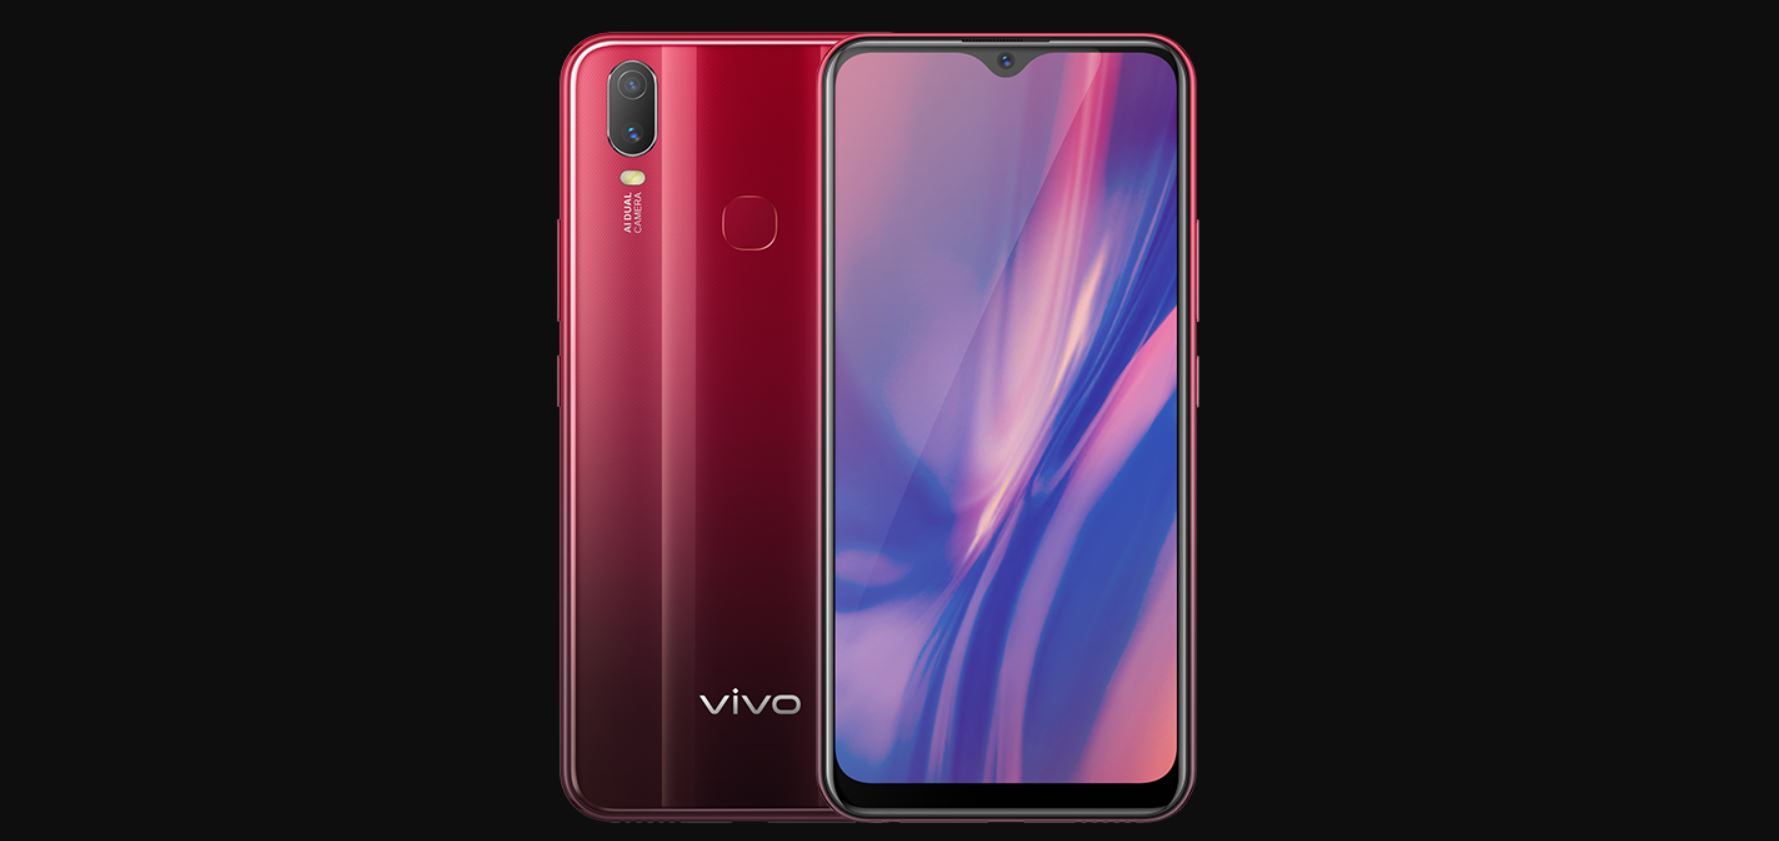 vivo-y11-2019-official-price-specs-release-date-philippines-2